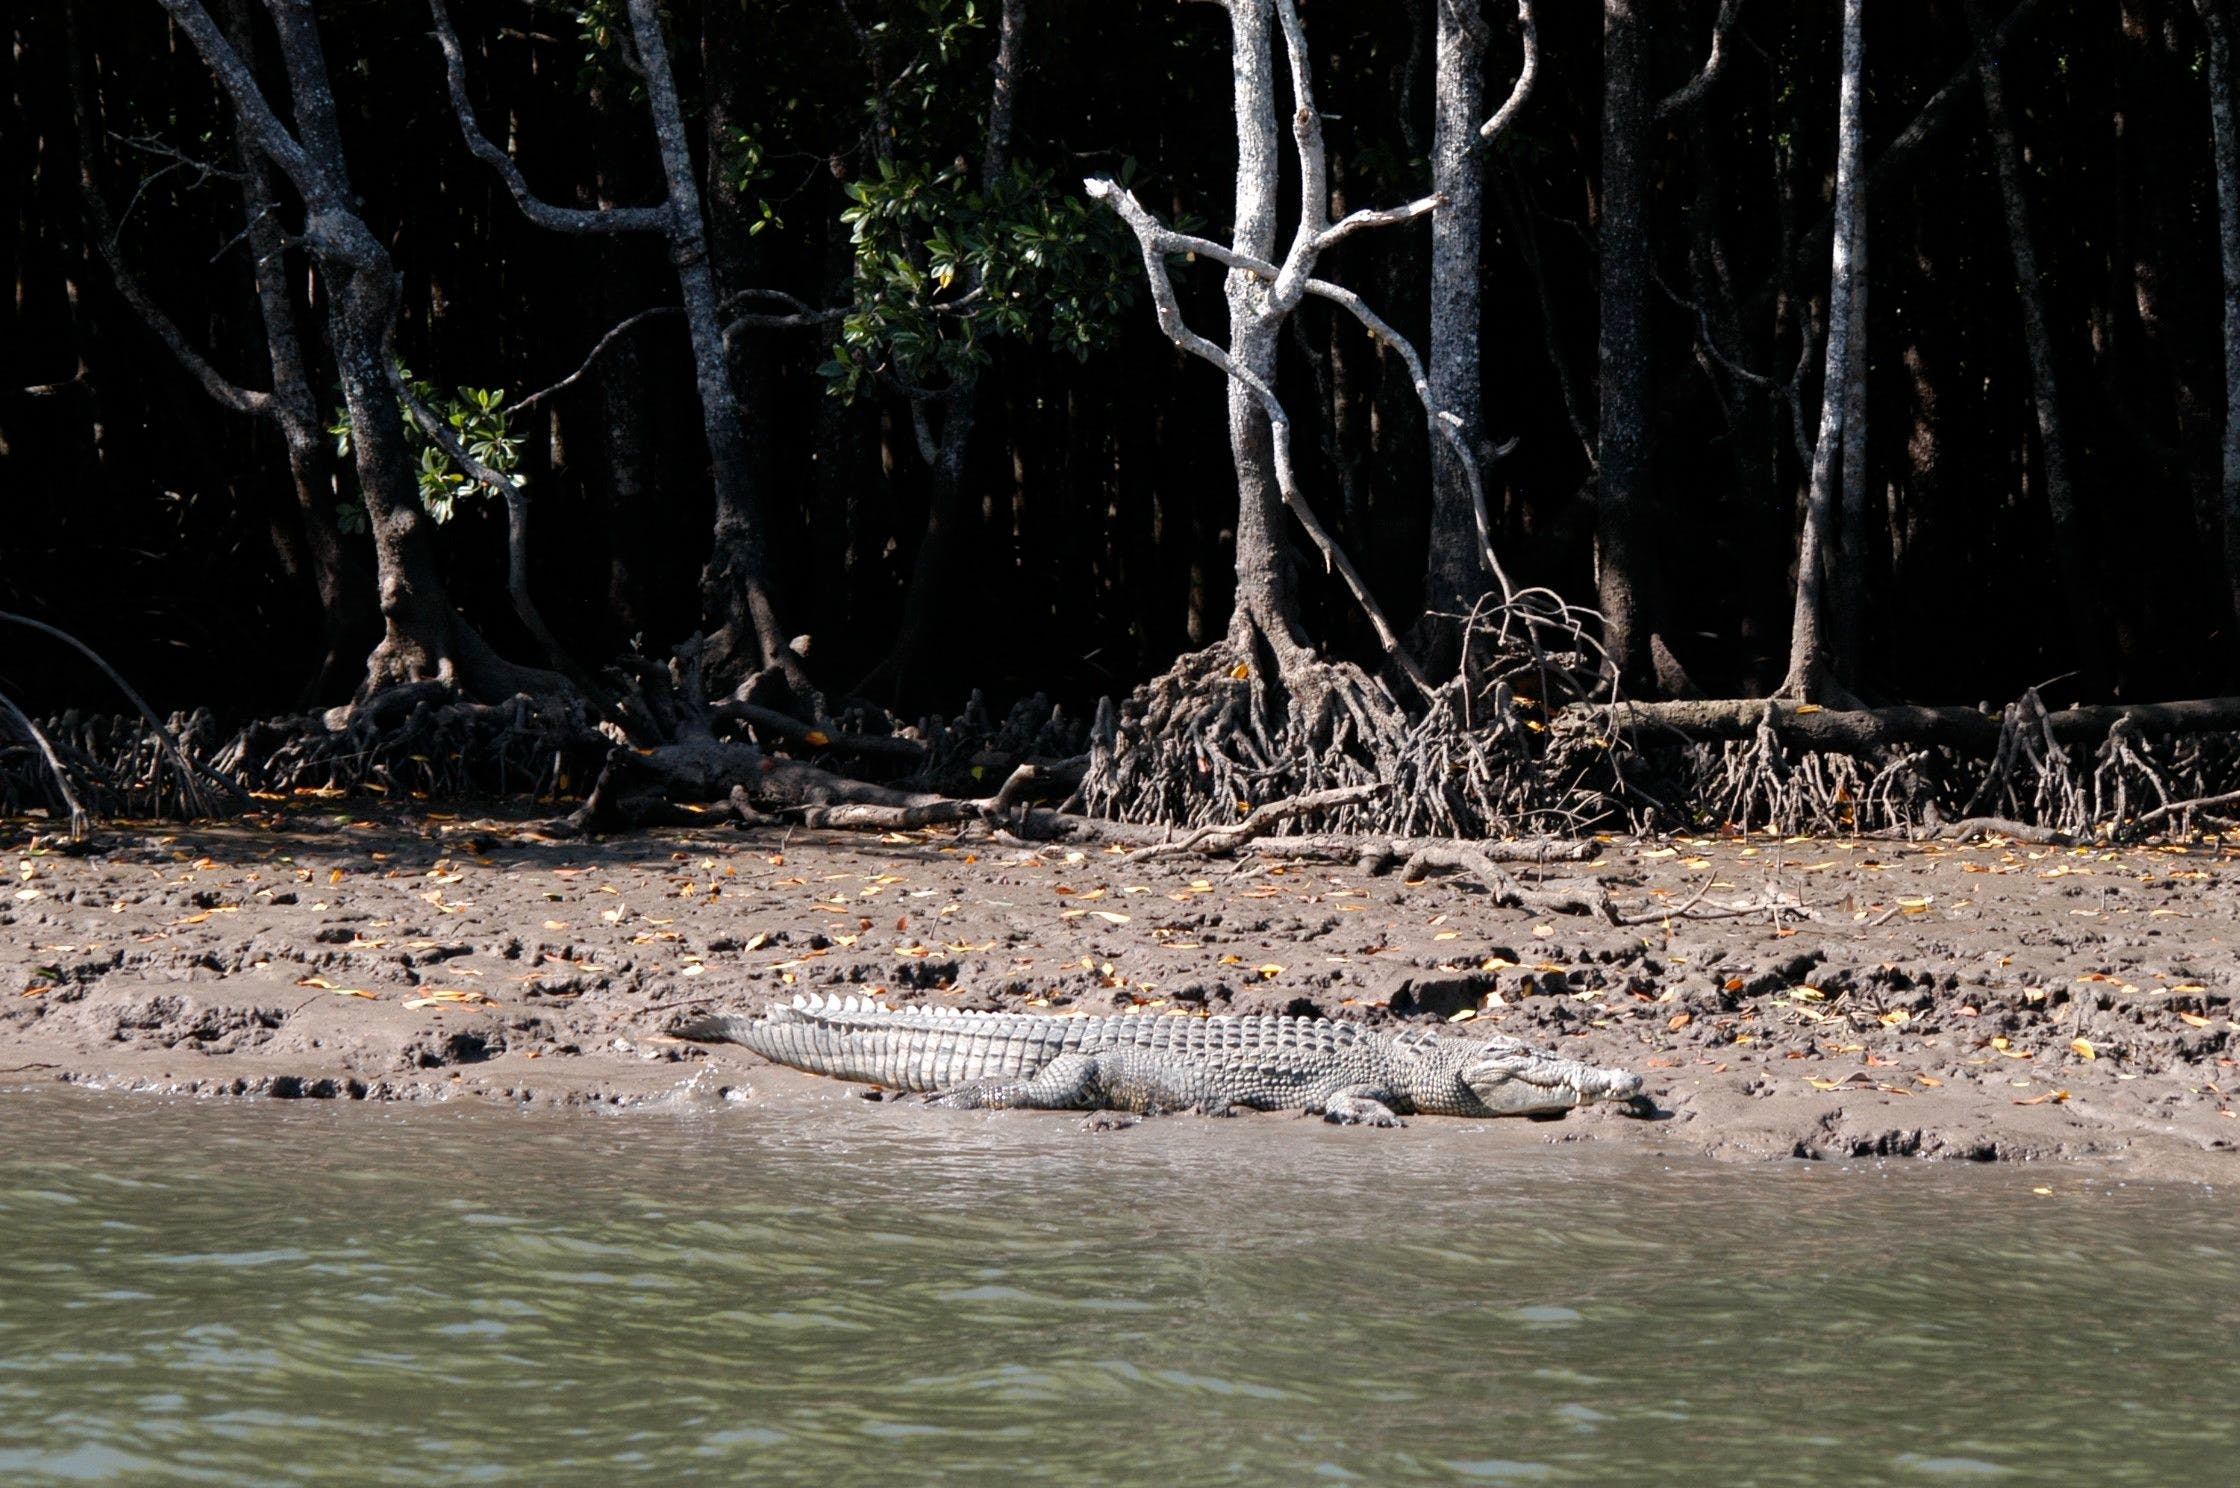 Crocodile in the wild on the Daintree River.